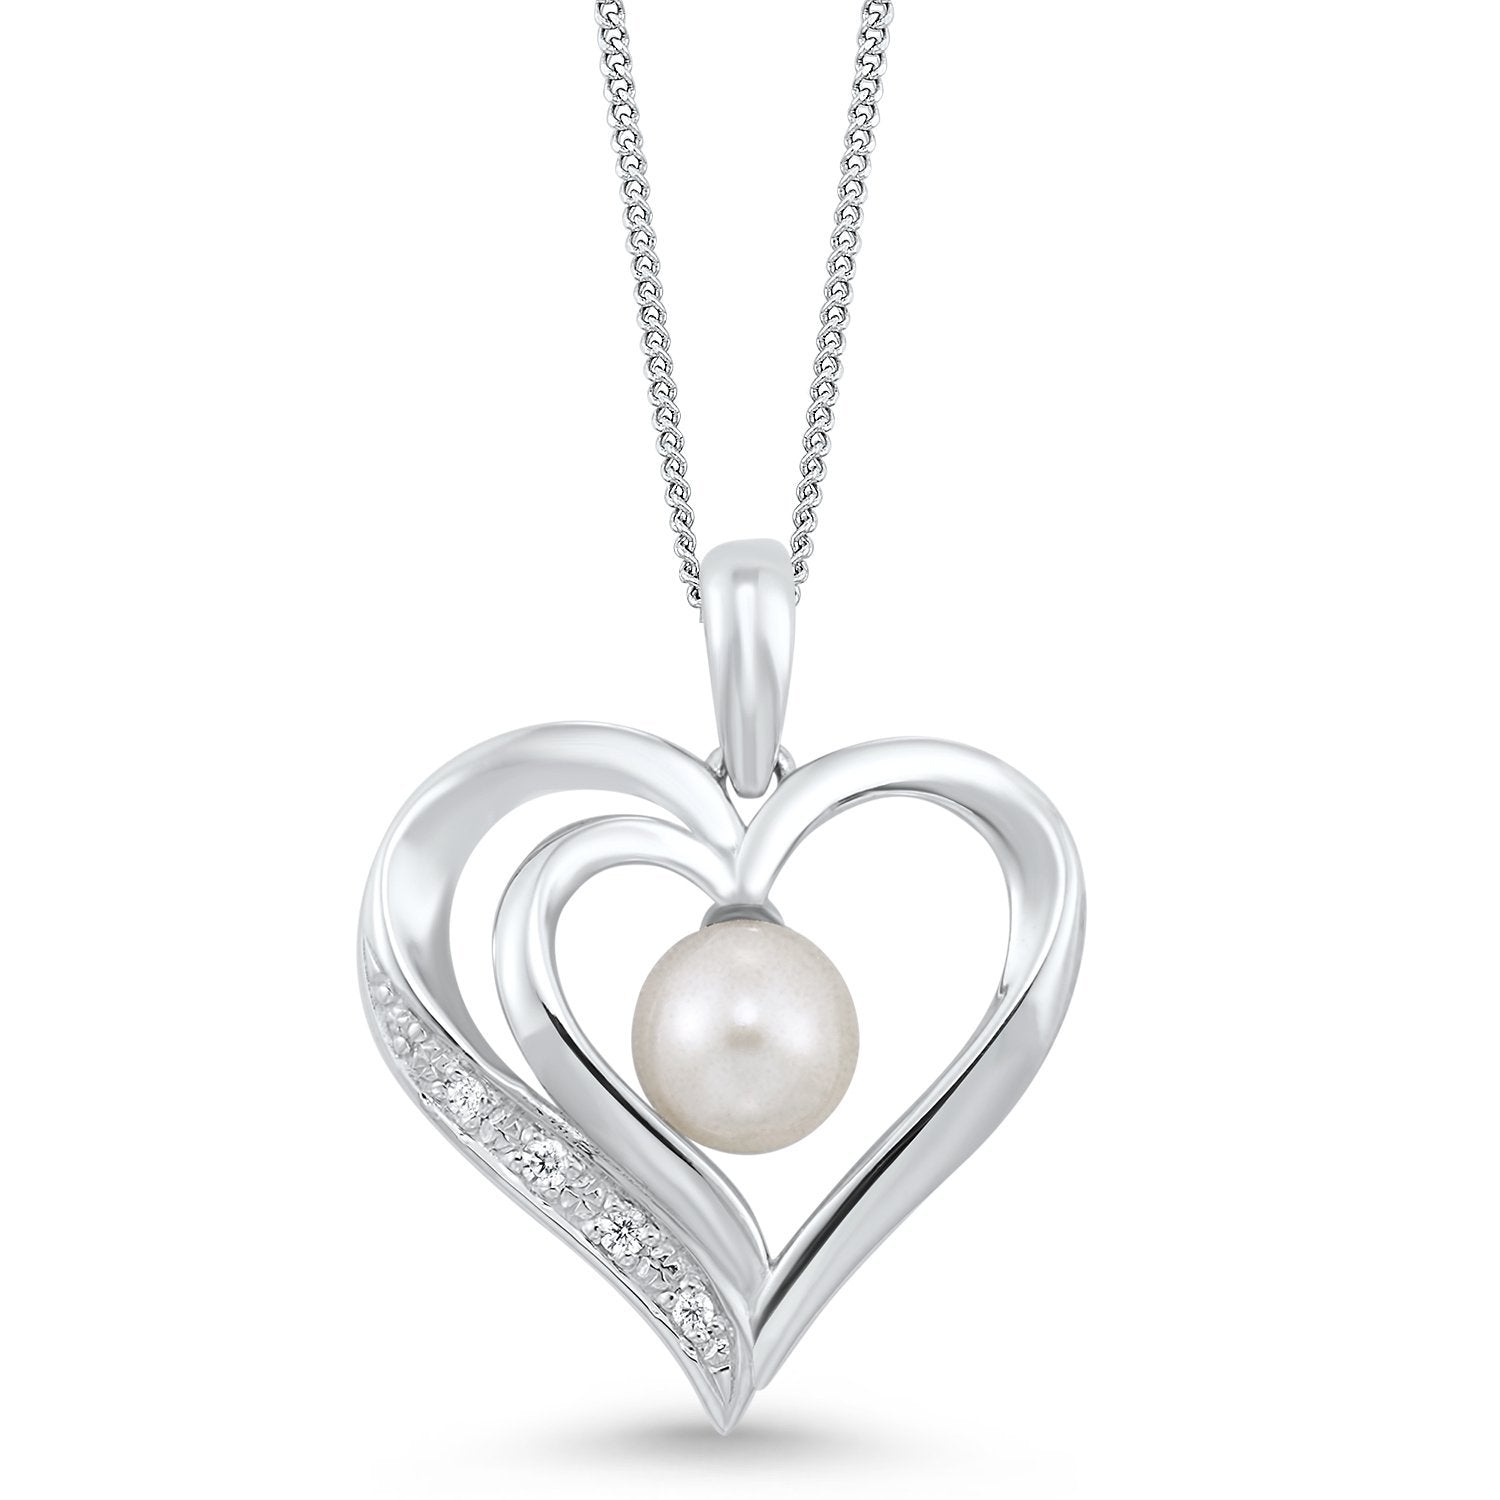 Sterling Silver and Freshwater Pearl Heart Necklace with CZ Accents